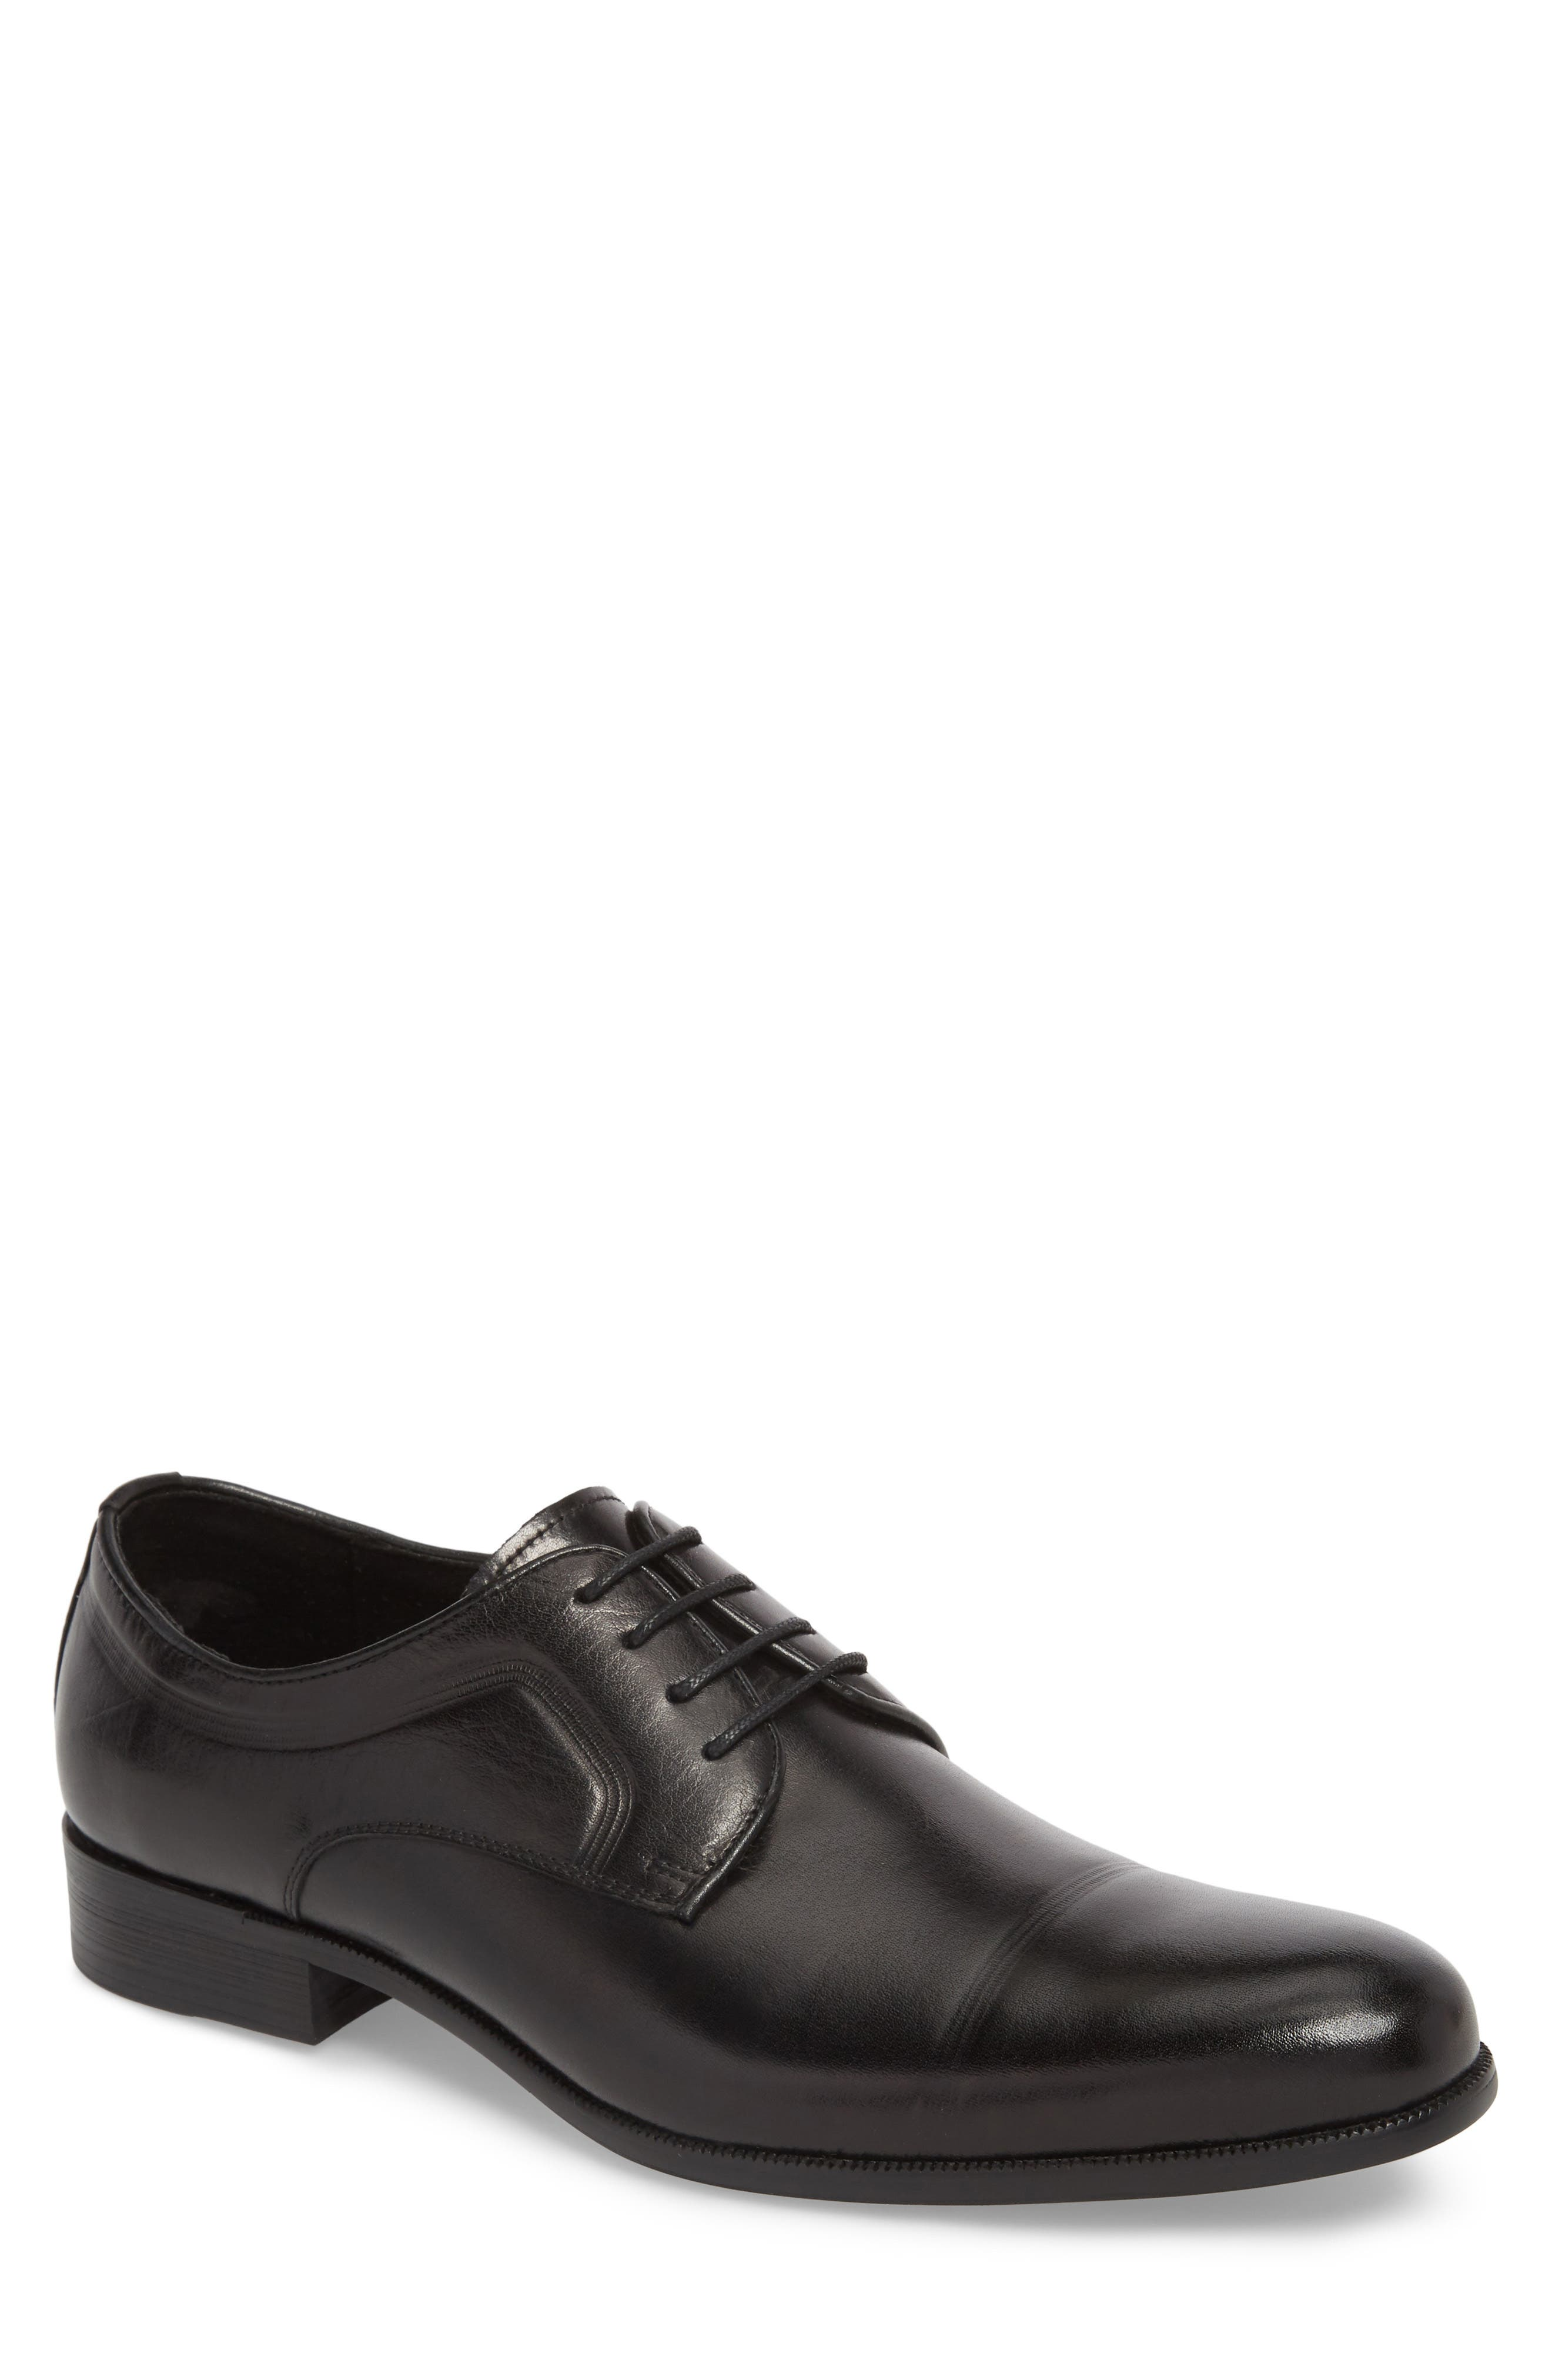 Chief Cap Toe Derby,                             Main thumbnail 1, color,                             001